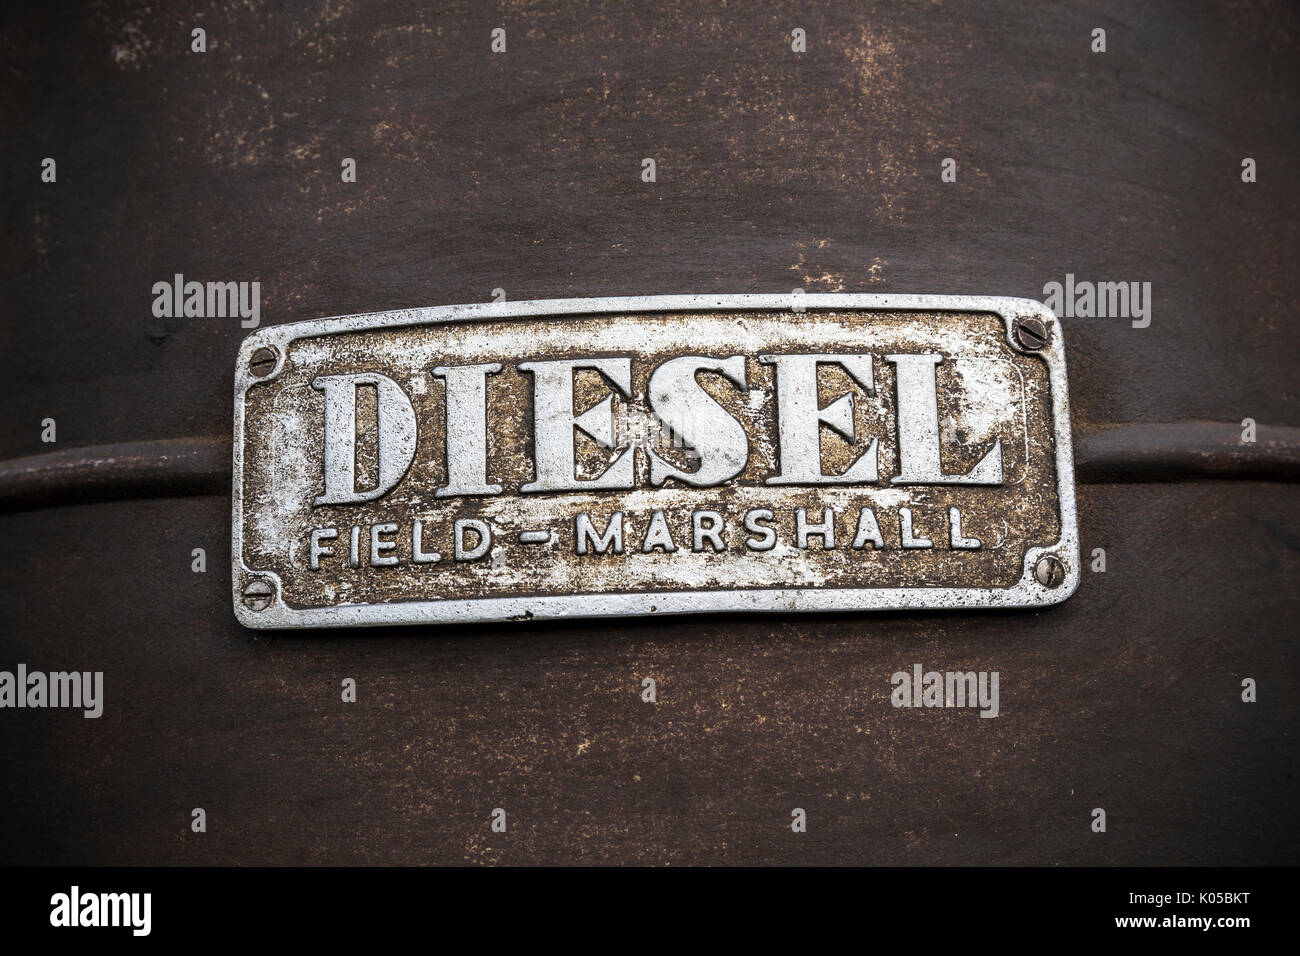 Diesel badge on vintage tractor,Global Warming Potential, or GWP,The diesel engine (also known as a compression-ignition or CI engine) Rudolph diesel. - Stock Image